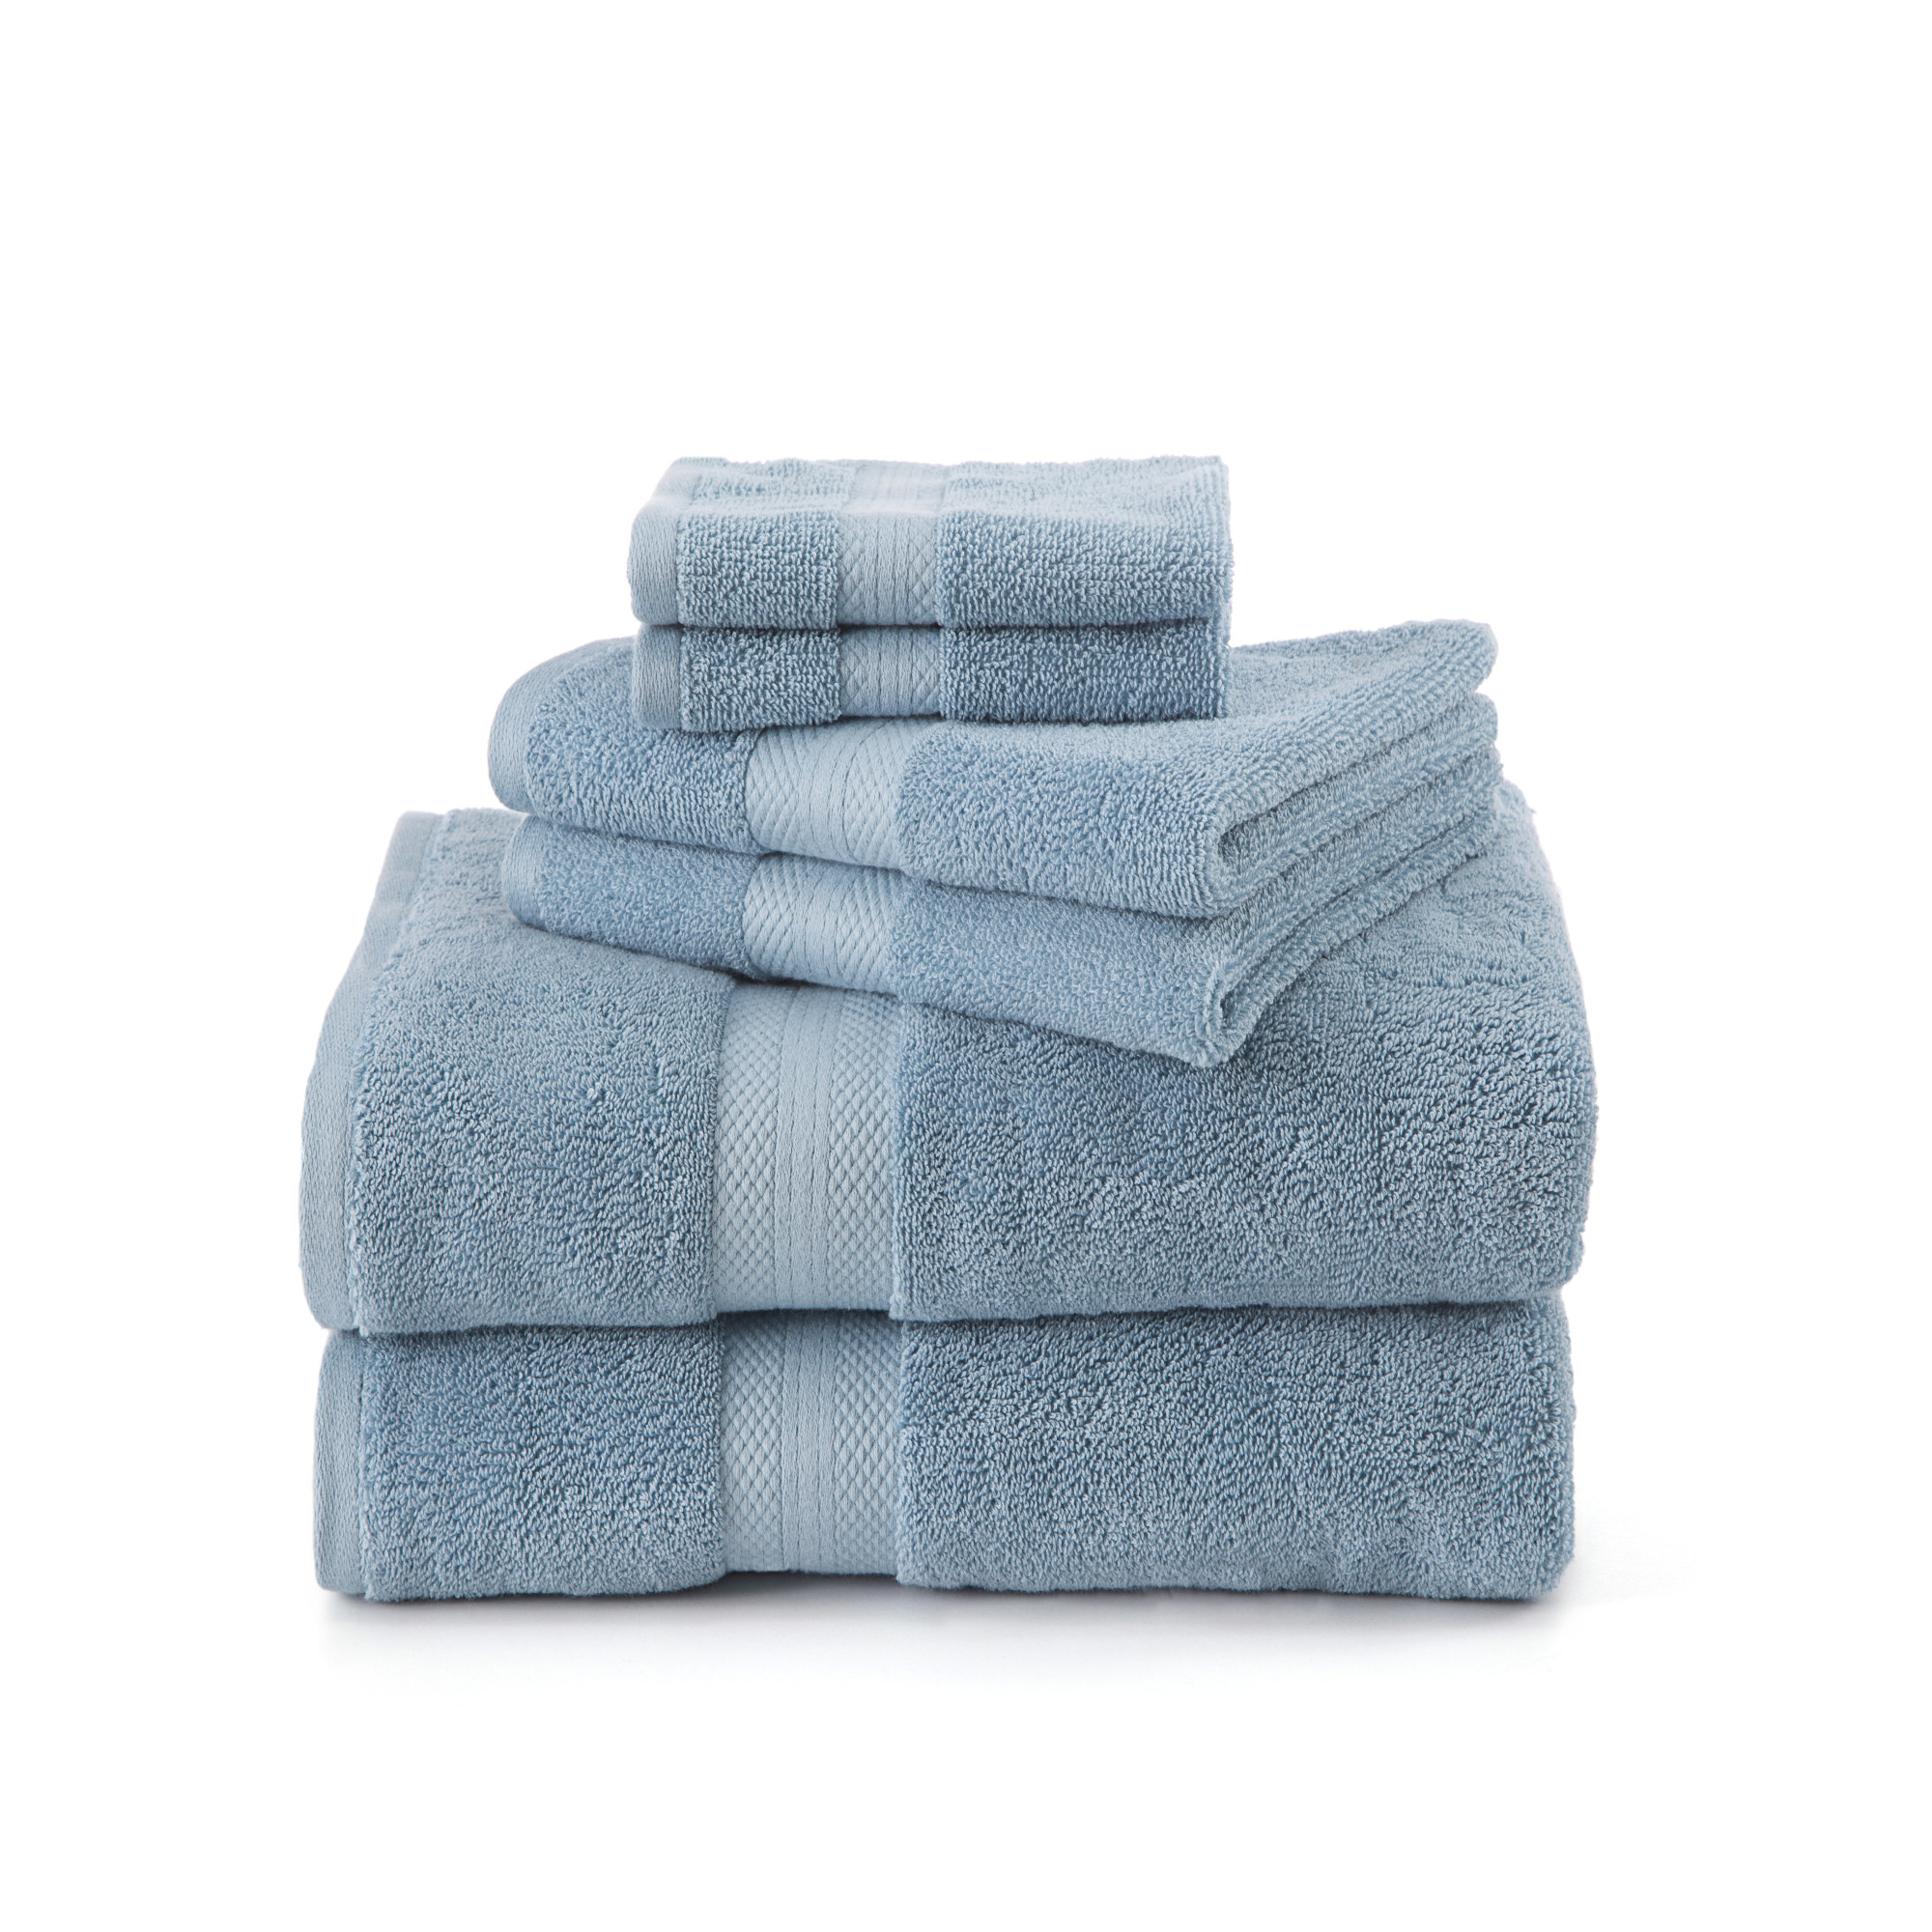 Absorbent 6 Piece Sage Towel Set by WestPoint Home